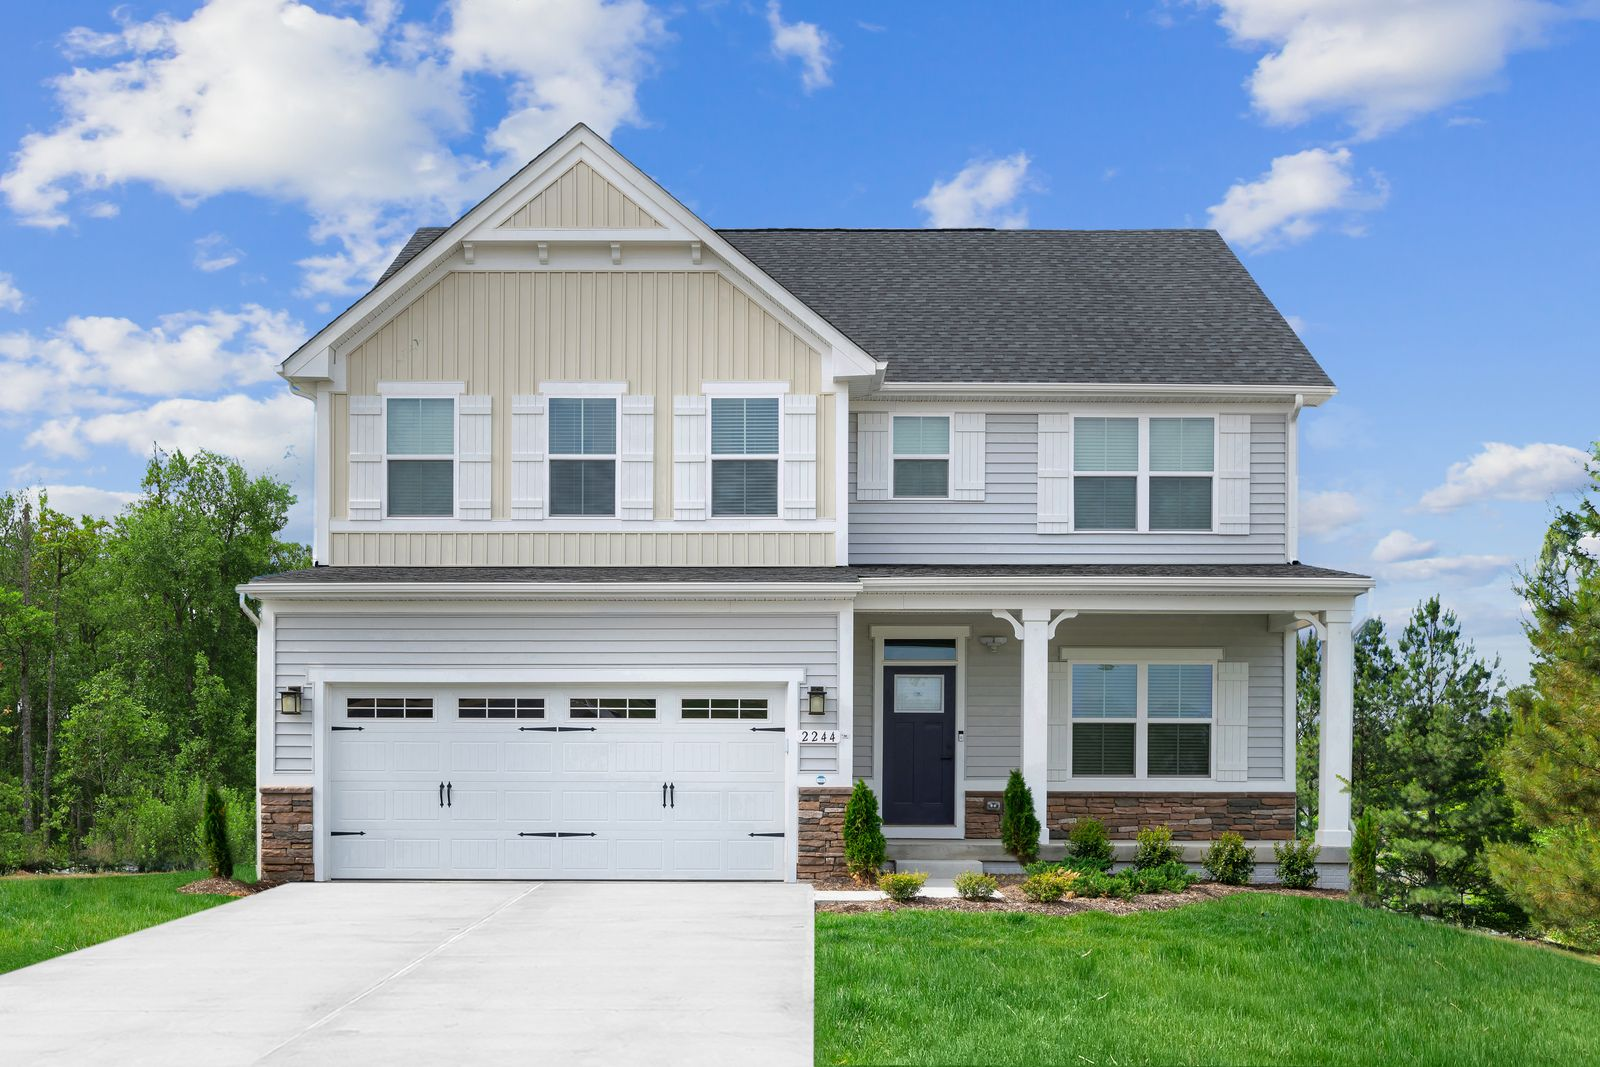 WELCOME HOME TO GLENDALE VILLAGE:Few homesites remain! Ranch & 2-story homes in Jackson Schools, just 1 mile to Belden and close to I-77—from mid $200s.Click here to schedule your 1-on-1 or virtual visit today!